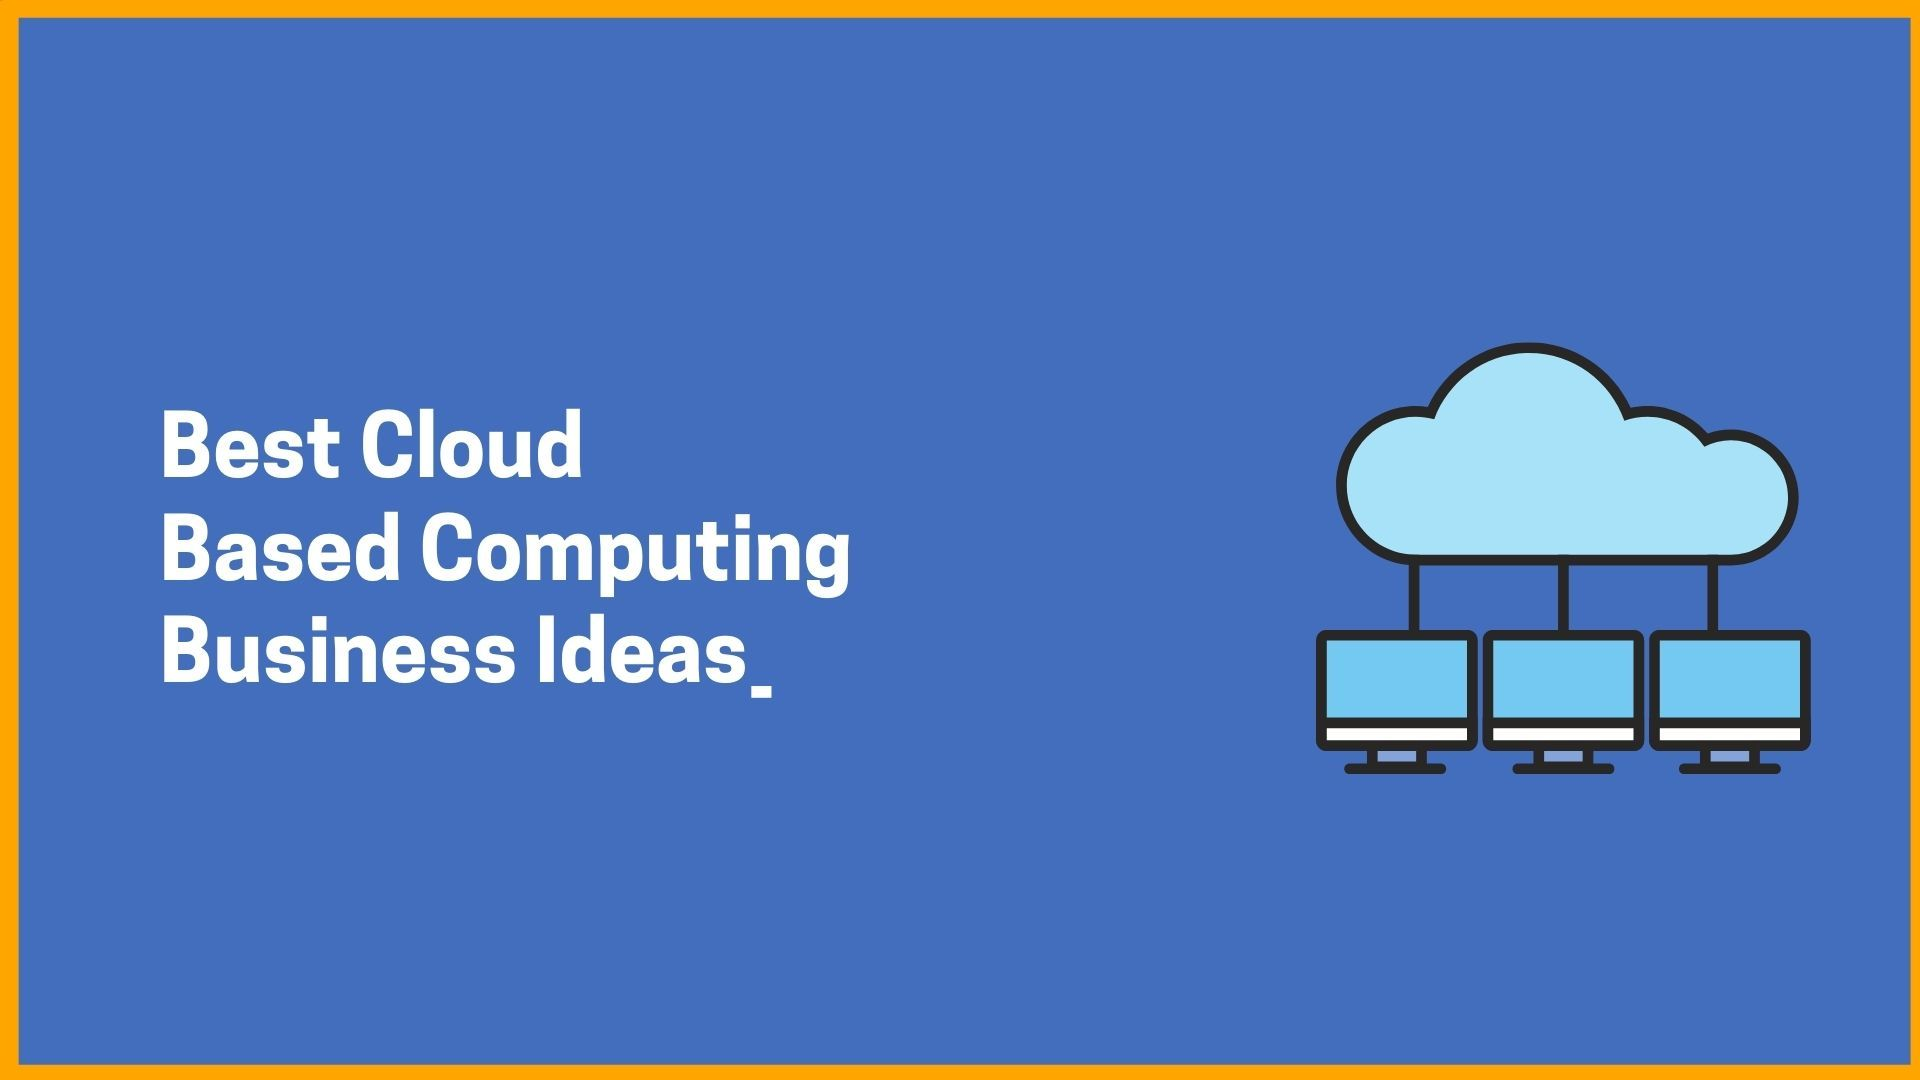 Best Cloud Based Computing Business Ideas